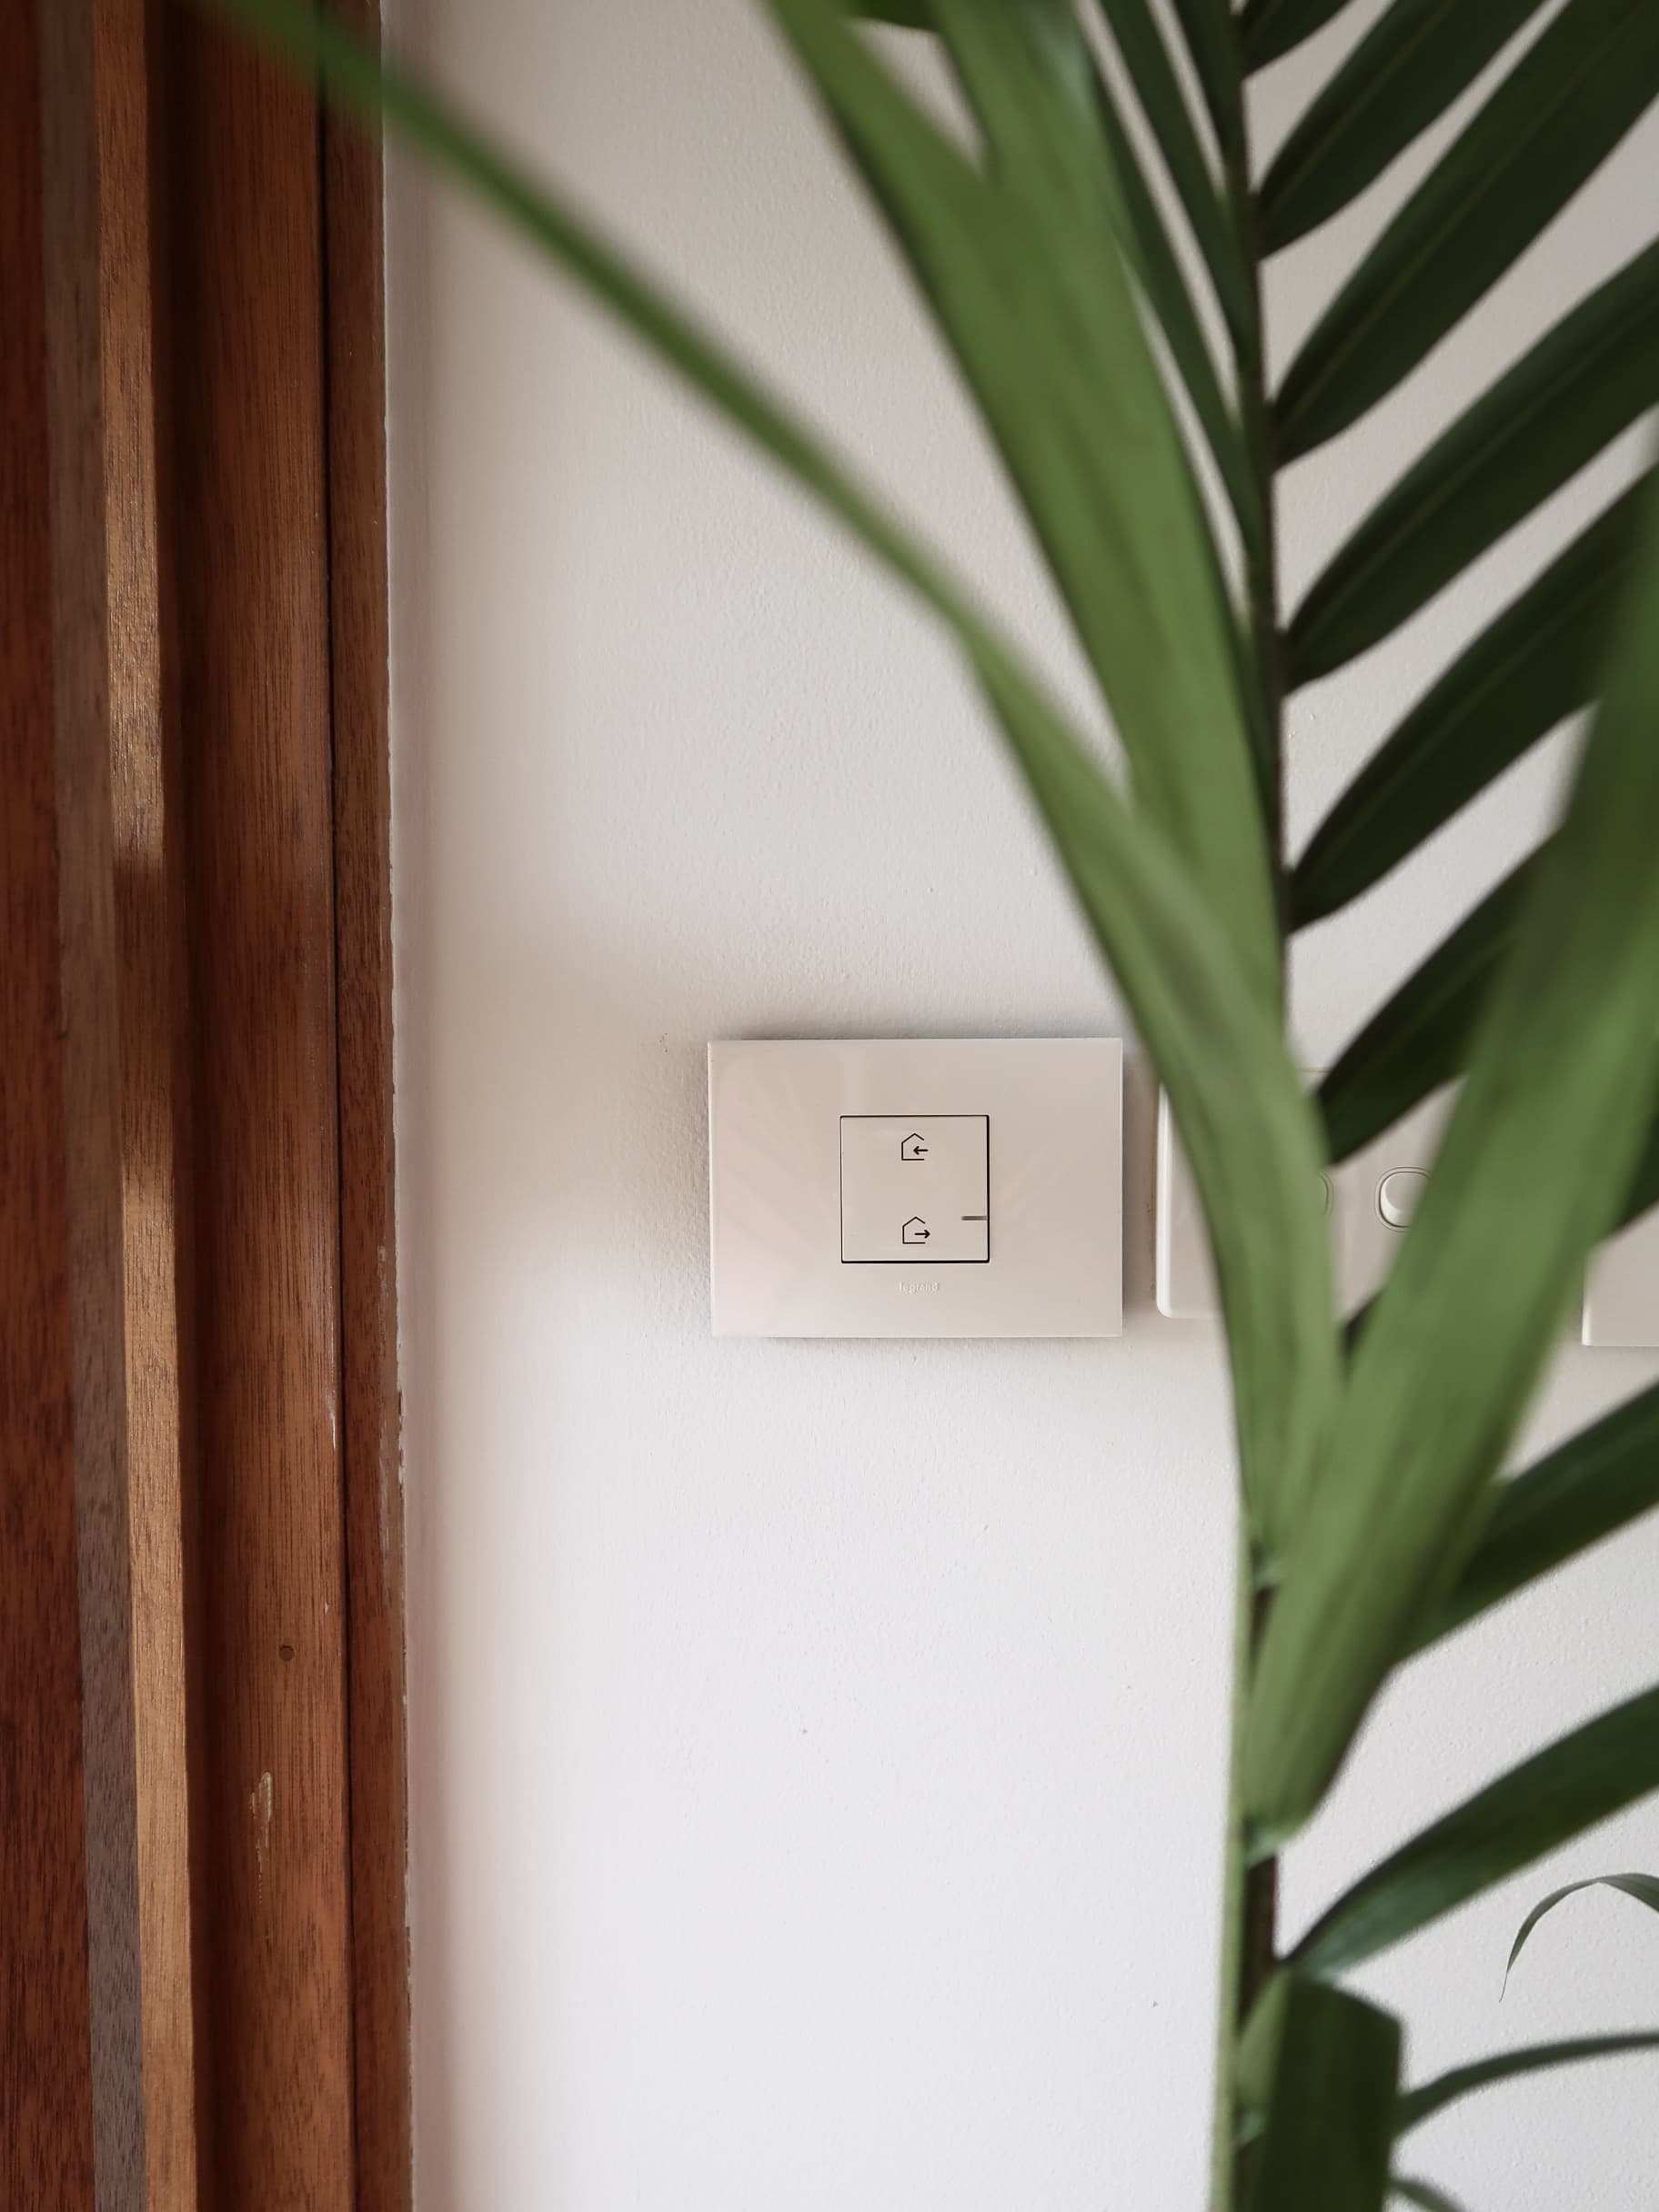 Home automation with Arteor with Netatmo